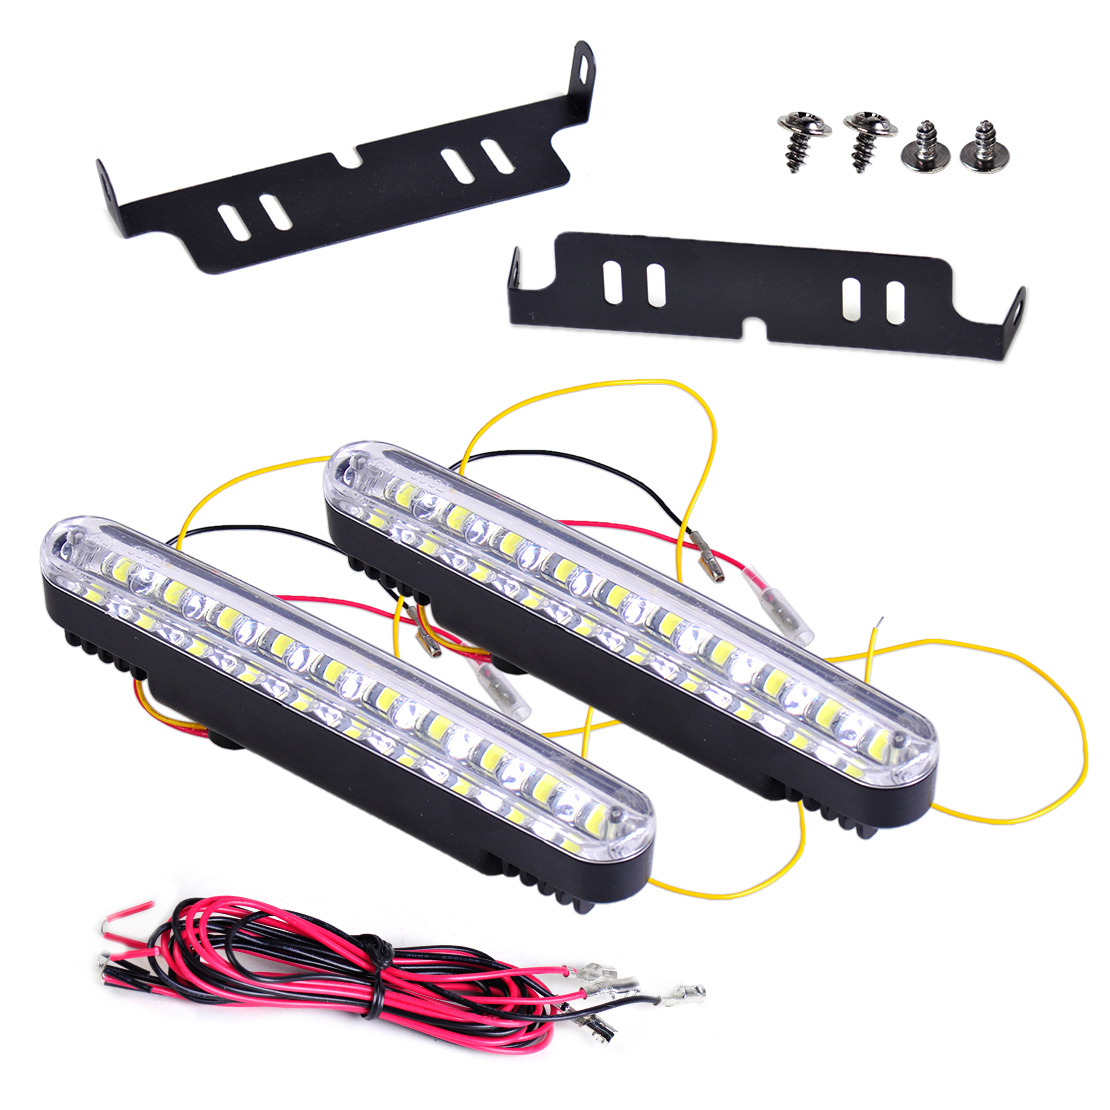 beler 2x 30 LED Car 12V Daytime Running Light DRL Driving Lamp White Amber Turn Signal Lights Fog Lamp Bright Strip Universal 1pcs high power h3 led 80w led super bright white fog tail turn drl auto car light daytime running driving lamp bulb 12v